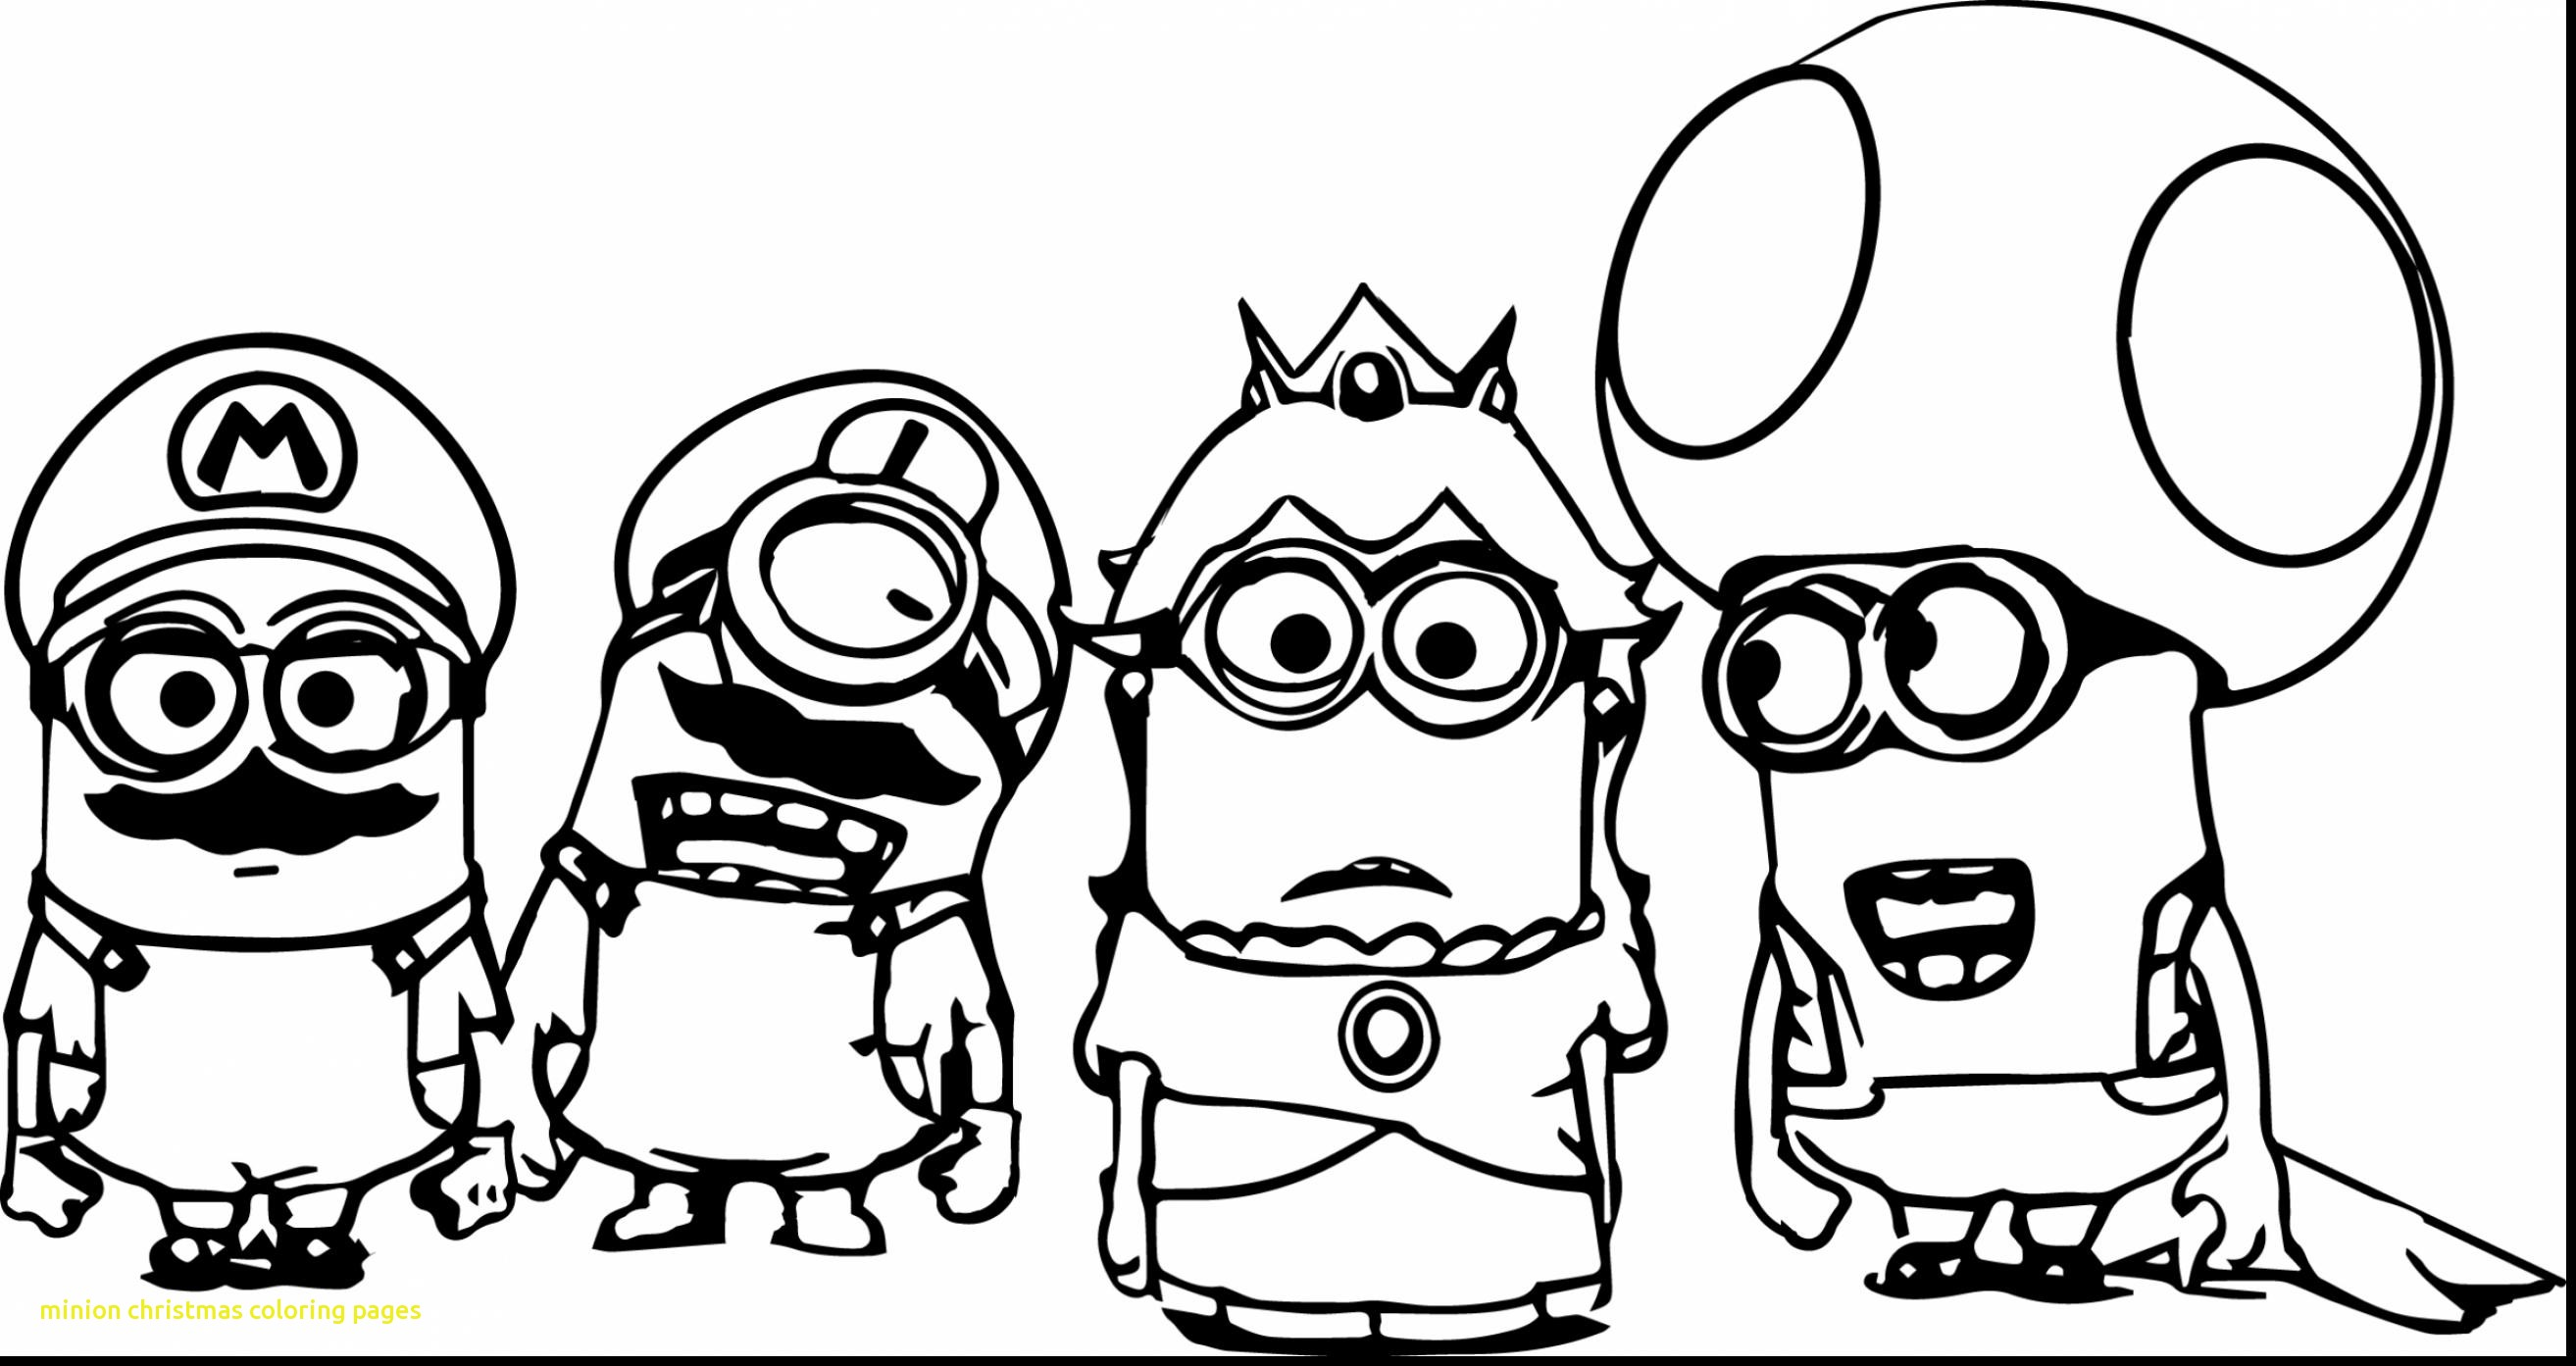 2627x1393 Inspiration Minion Christmas Coloring Pages With Minions Christmas